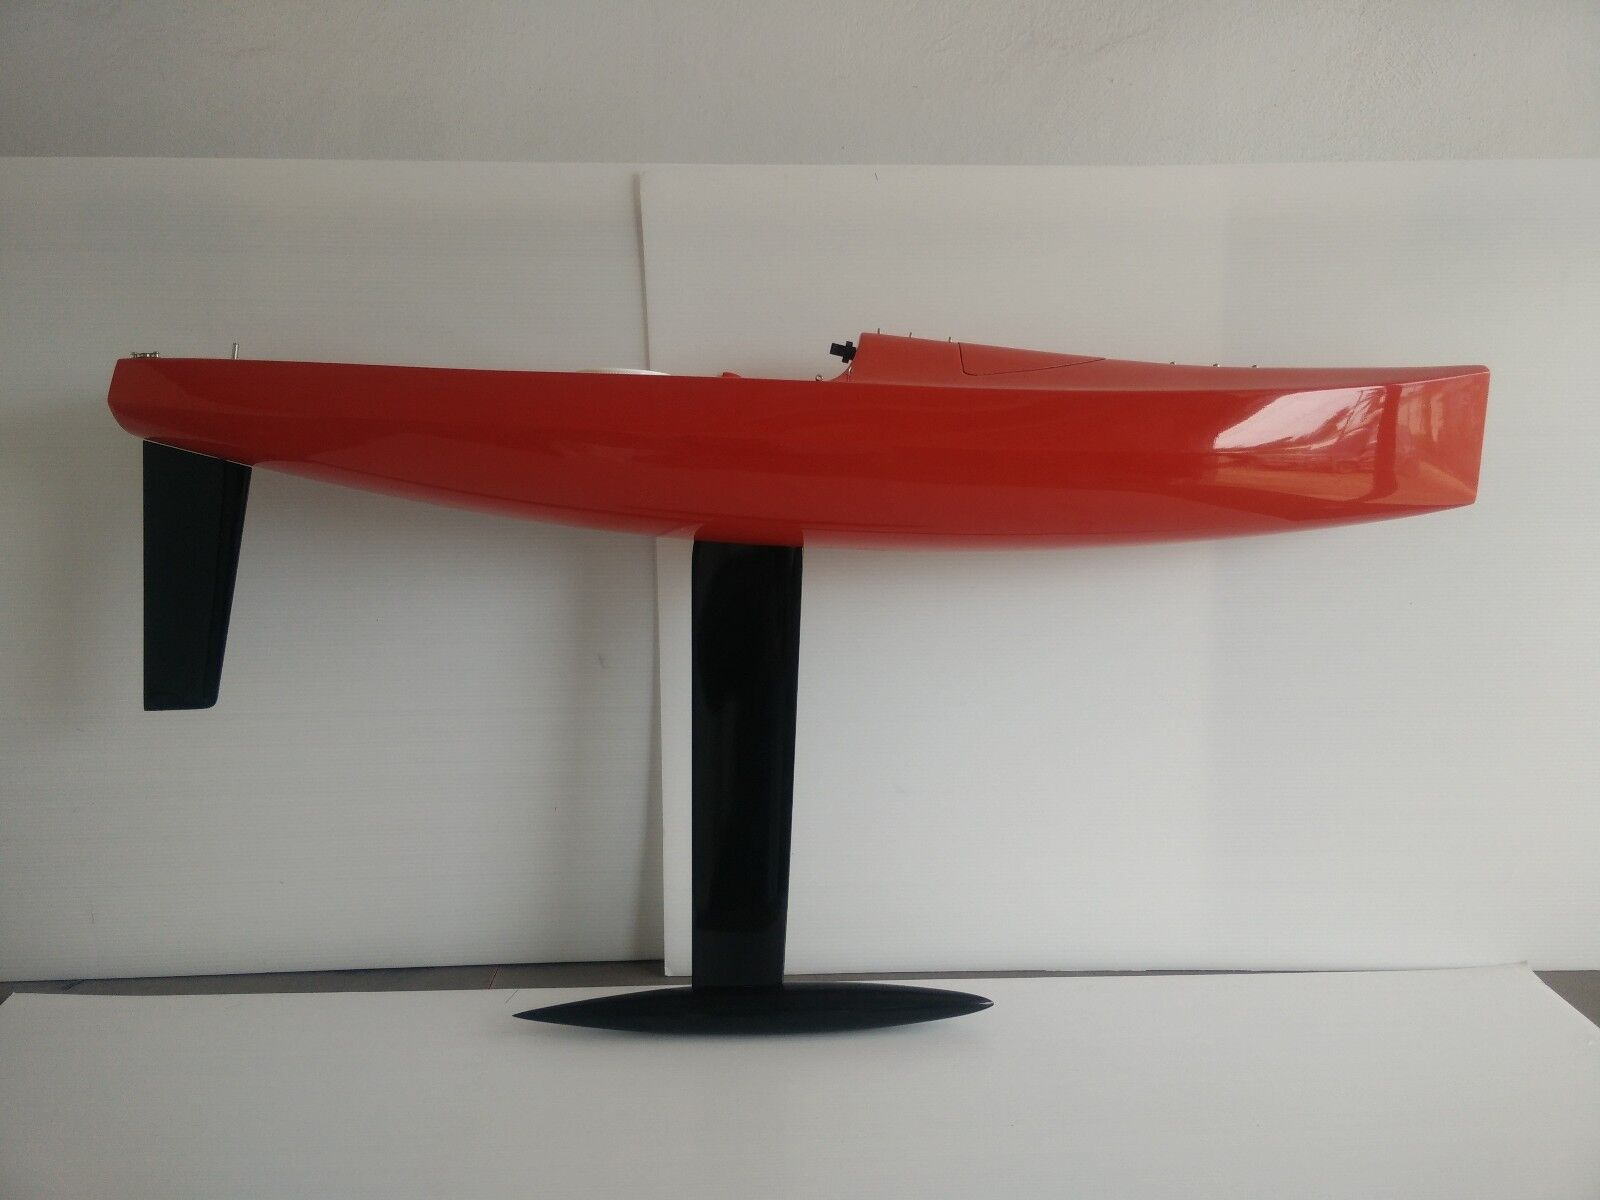 10% discount for MX16 IOM RC Sailboat